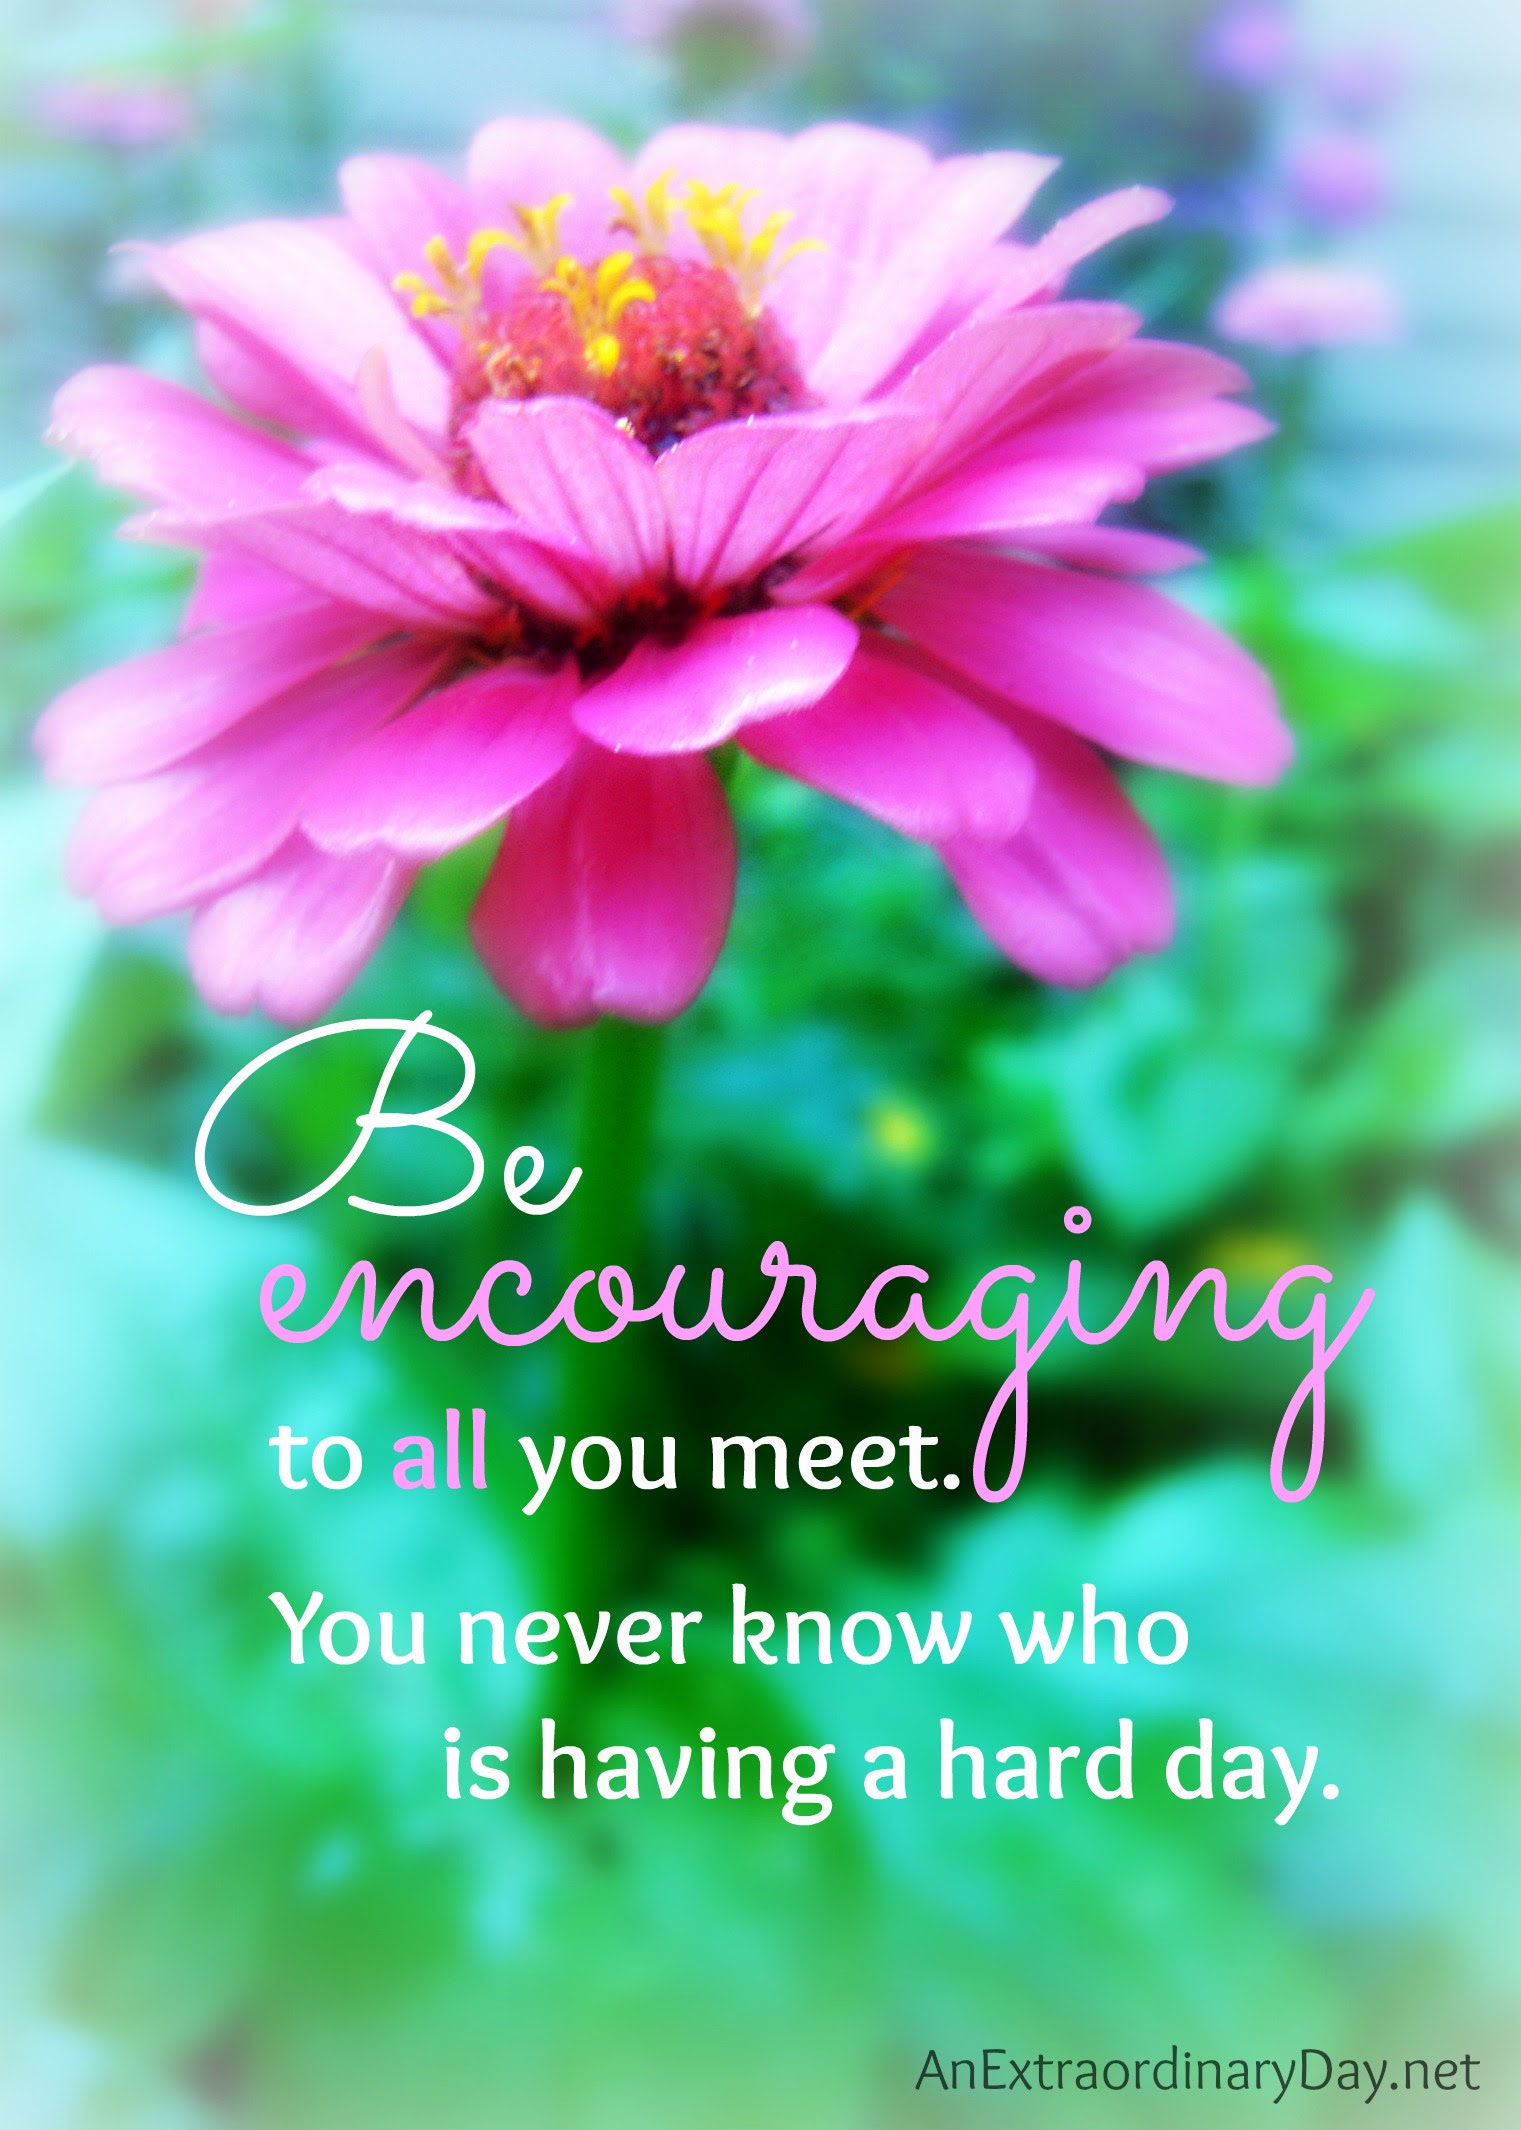 Encouragement Quotes For Workplace. QuotesGram